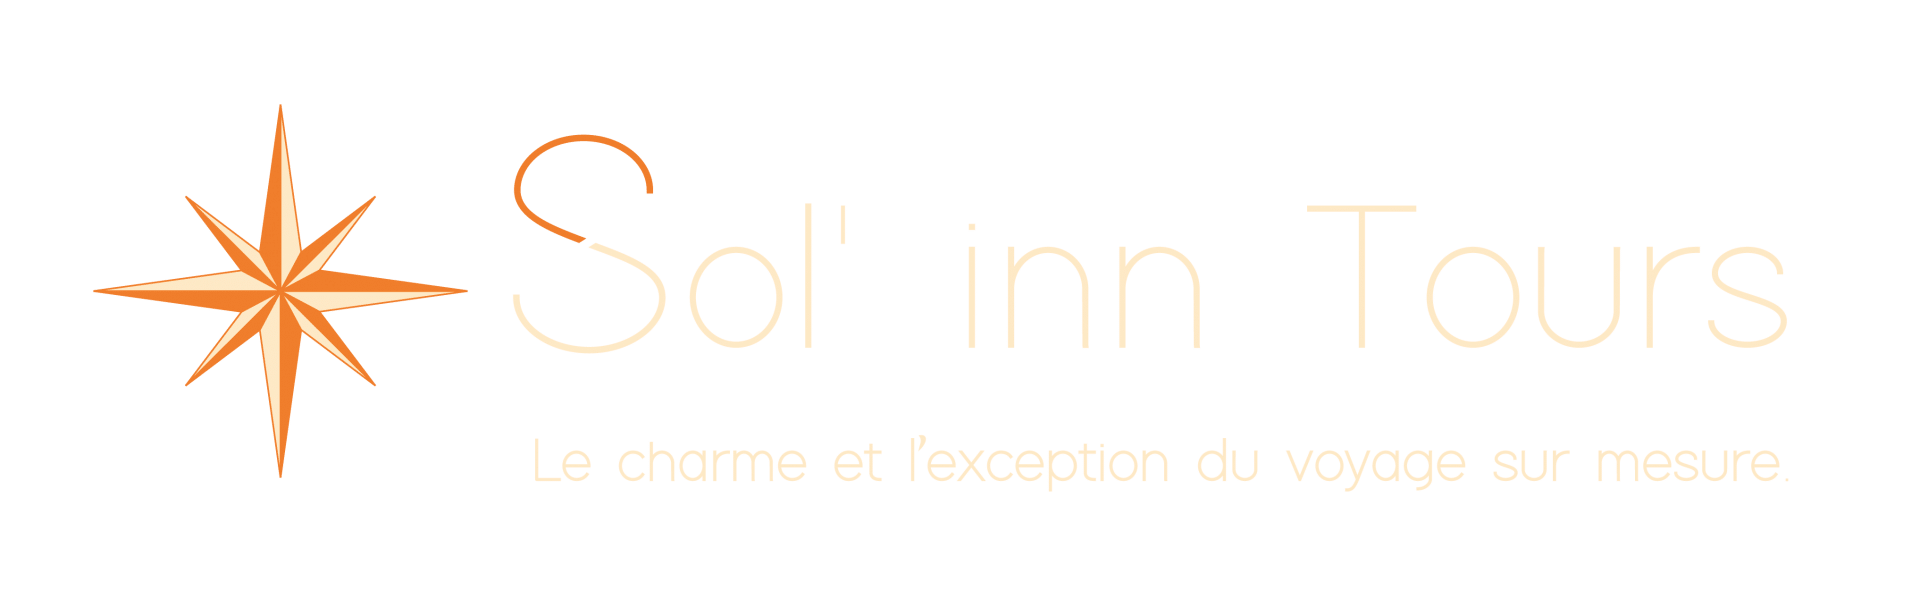 logo sol inn tour